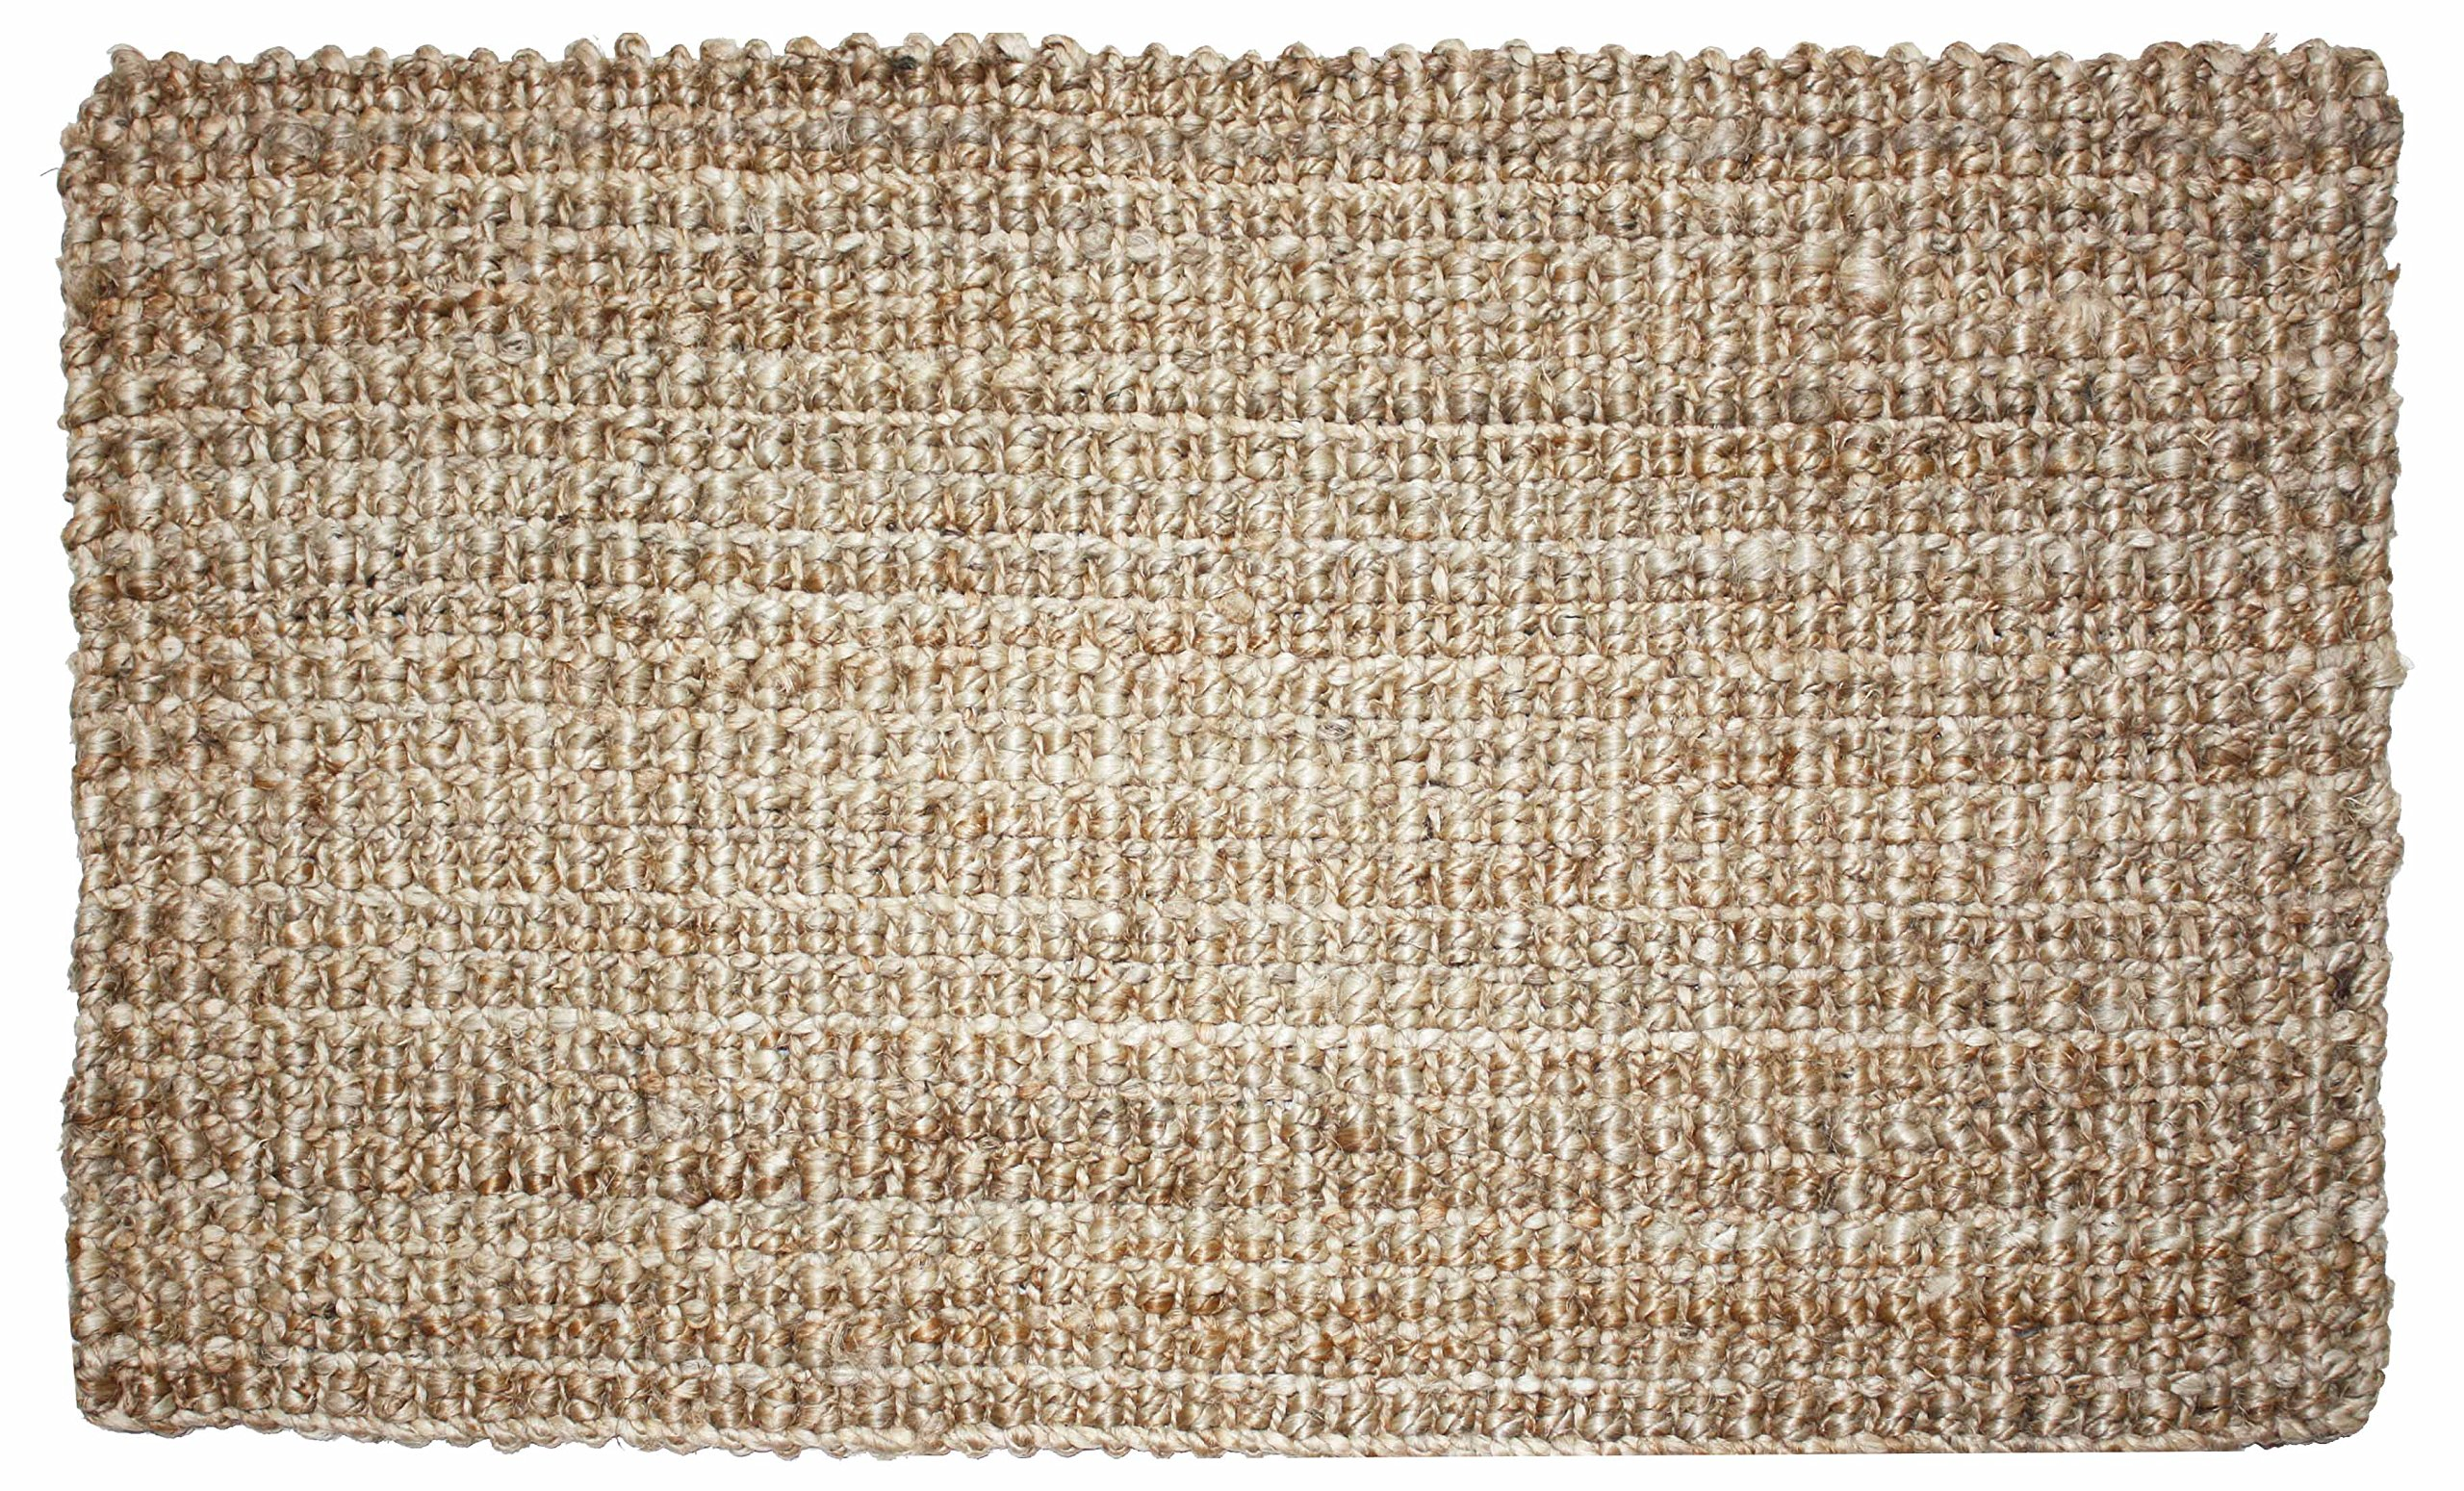 "Neutral Eco-Friendly Sturdy Rolled Natural Indoor/Outdoor Jute Rug, 24x36"", Reversible for double the wear-Gold - QUALITY YOU CAN RELOY ON: Rug measures 24x36"", made of durable 100% Jute, a shiny vegetable fiber spun into coarse threads. SCRAPE DIRT & EASY CARE: Easily scrape off dirt, dust, grit, mud, grass or snow. GREAT RUG TO COORDINATE WITH ANY HOME DÉCOR: The Natural and Neutral tones fit with any homde and office style and color. - living-room-soft-furnishings, living-room, area-rugs - A1RkazIIhDL -"